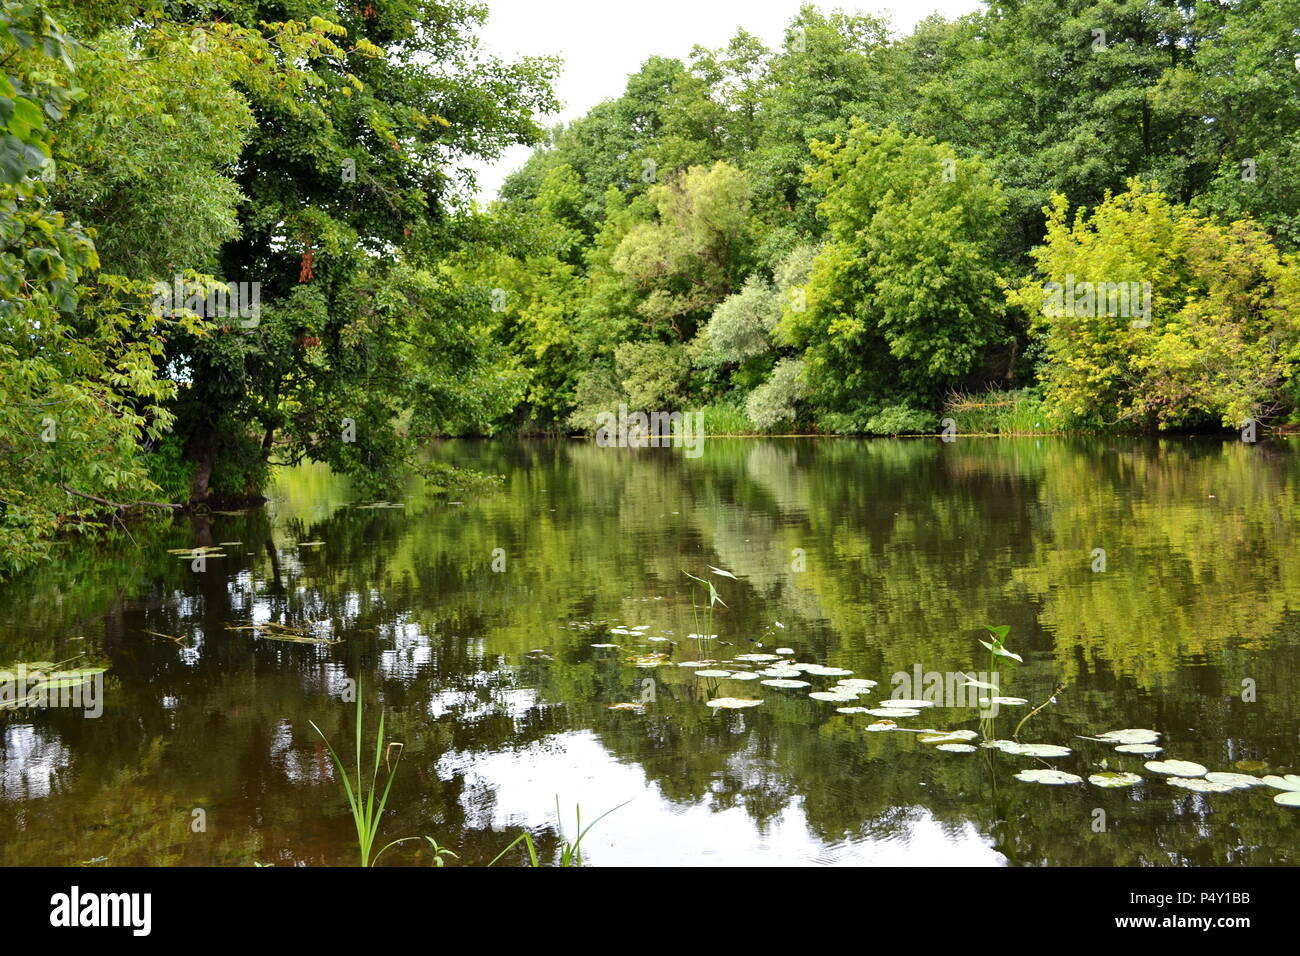 On the bank of a small river sultry summer day - Stock Image